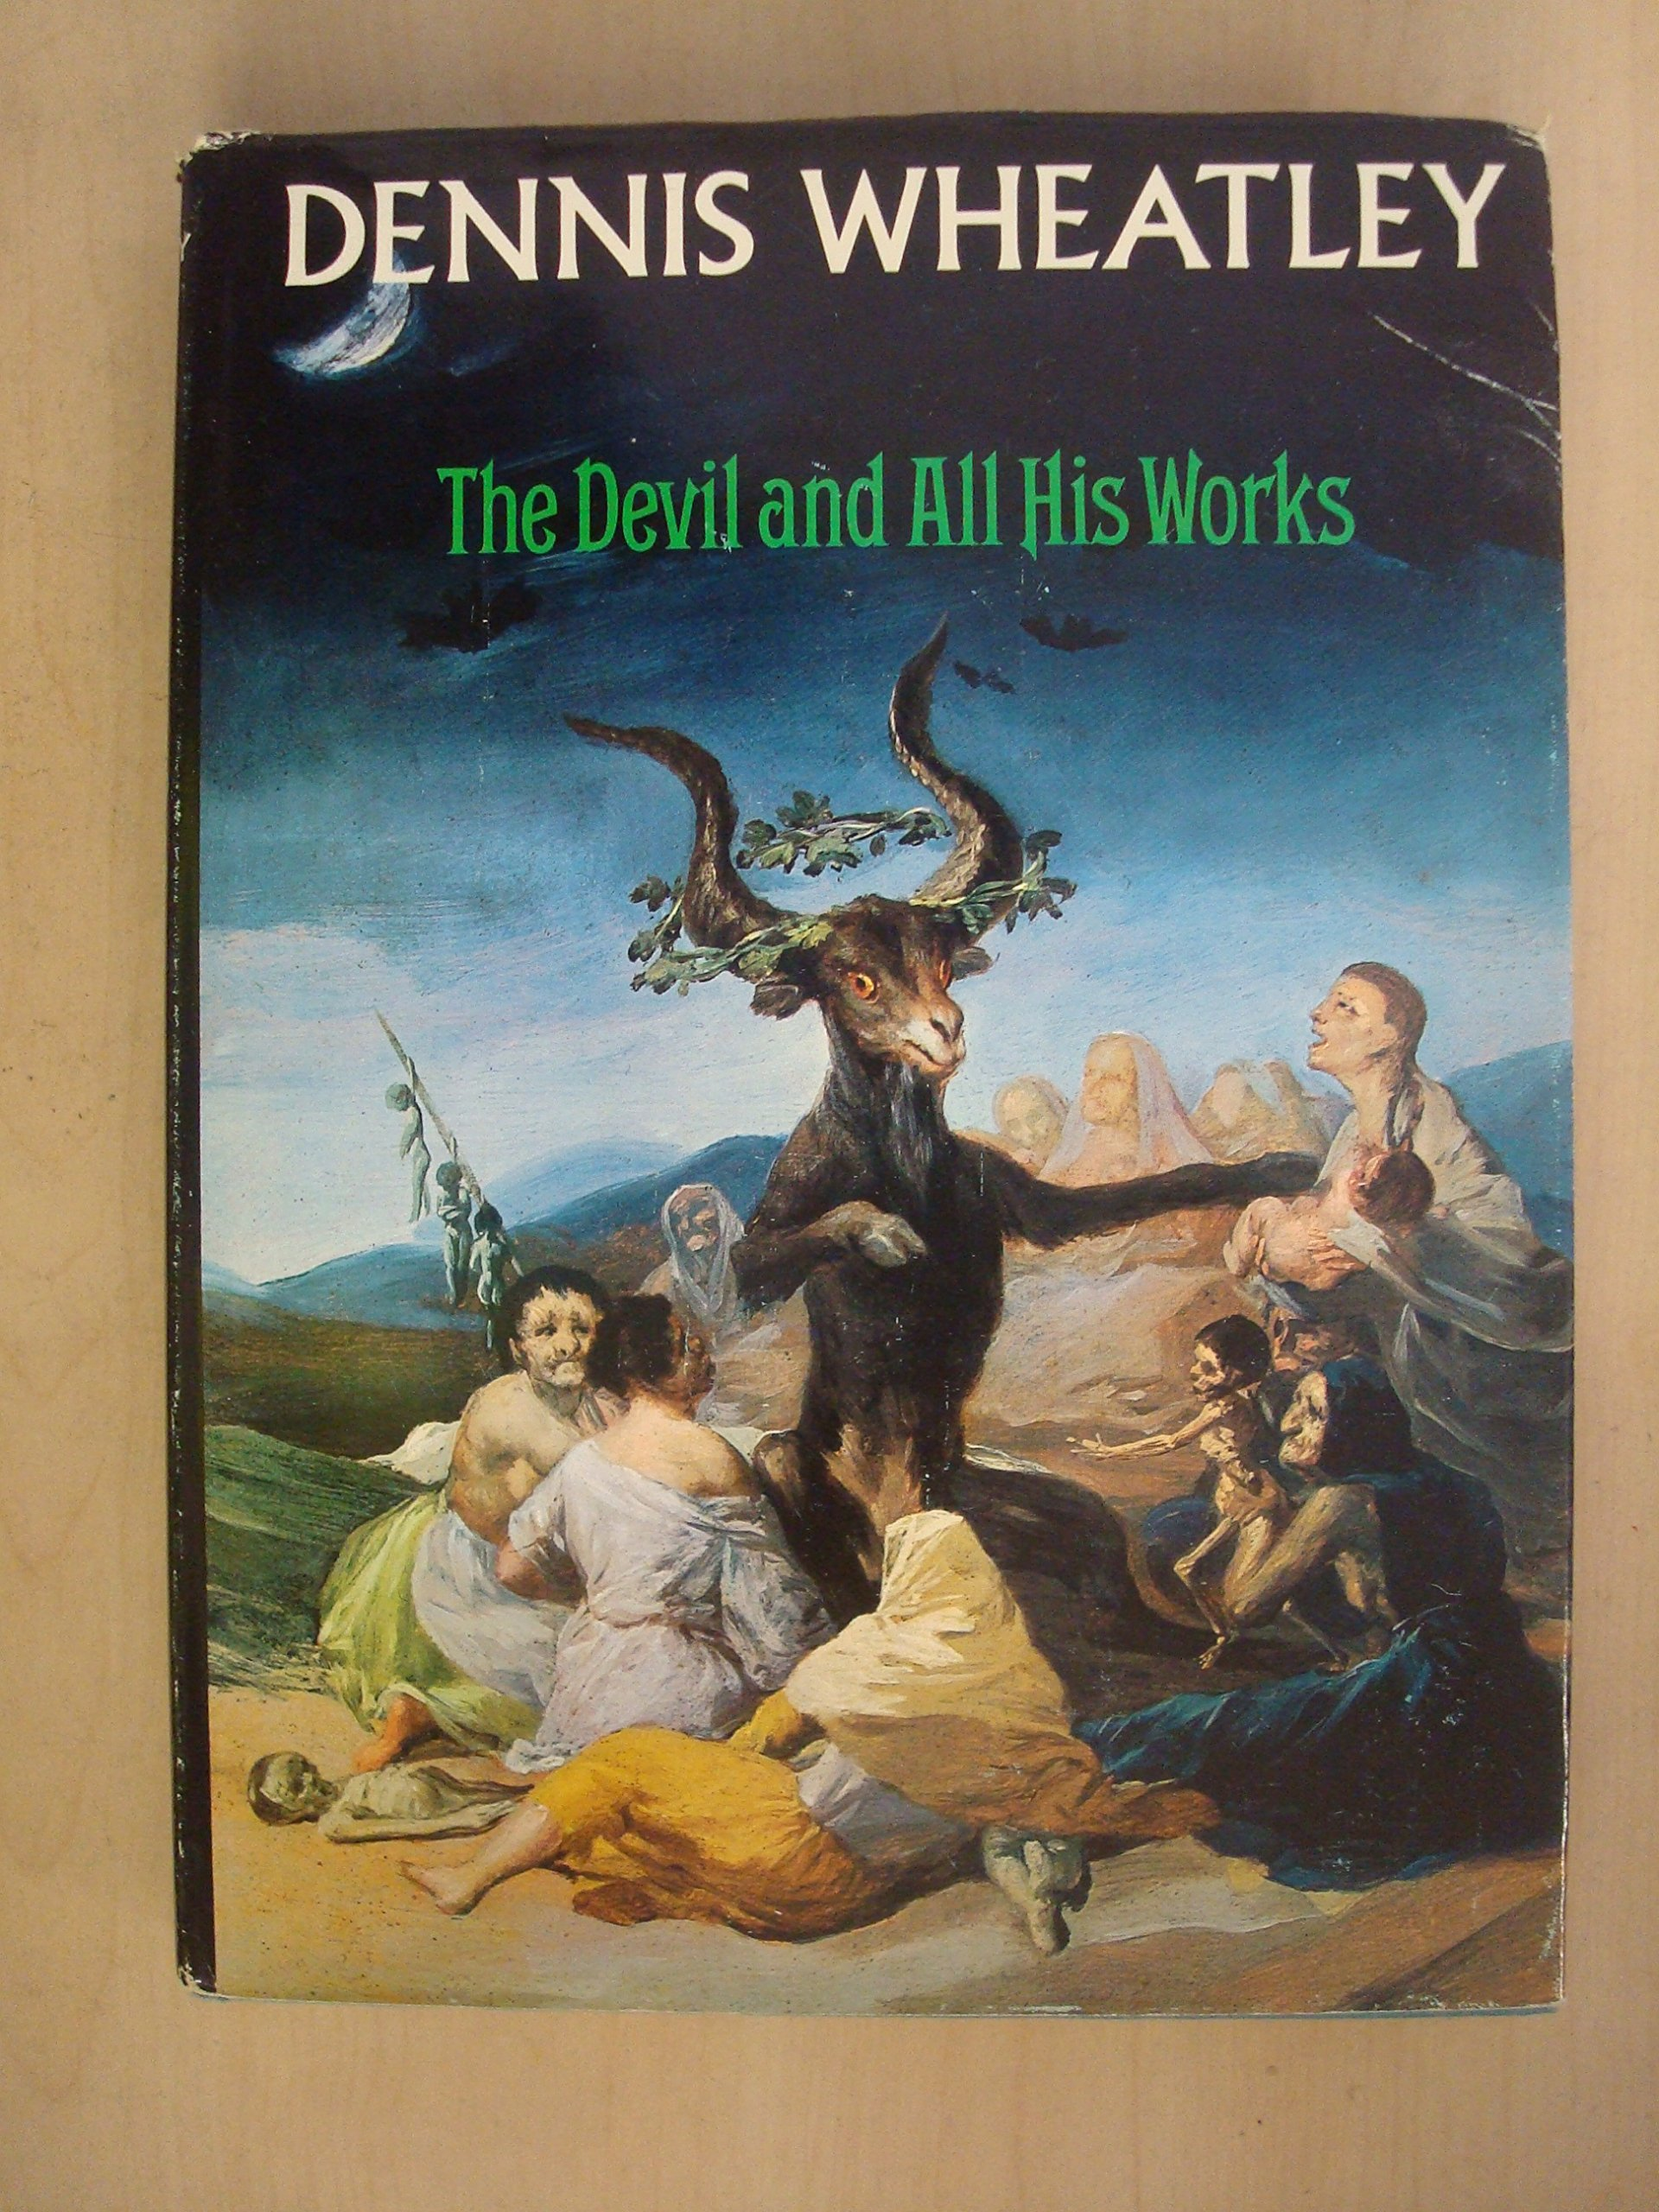 Devil and All His Works: Amazon.co.uk: Dennis Wheatley: 9780099080305: Books